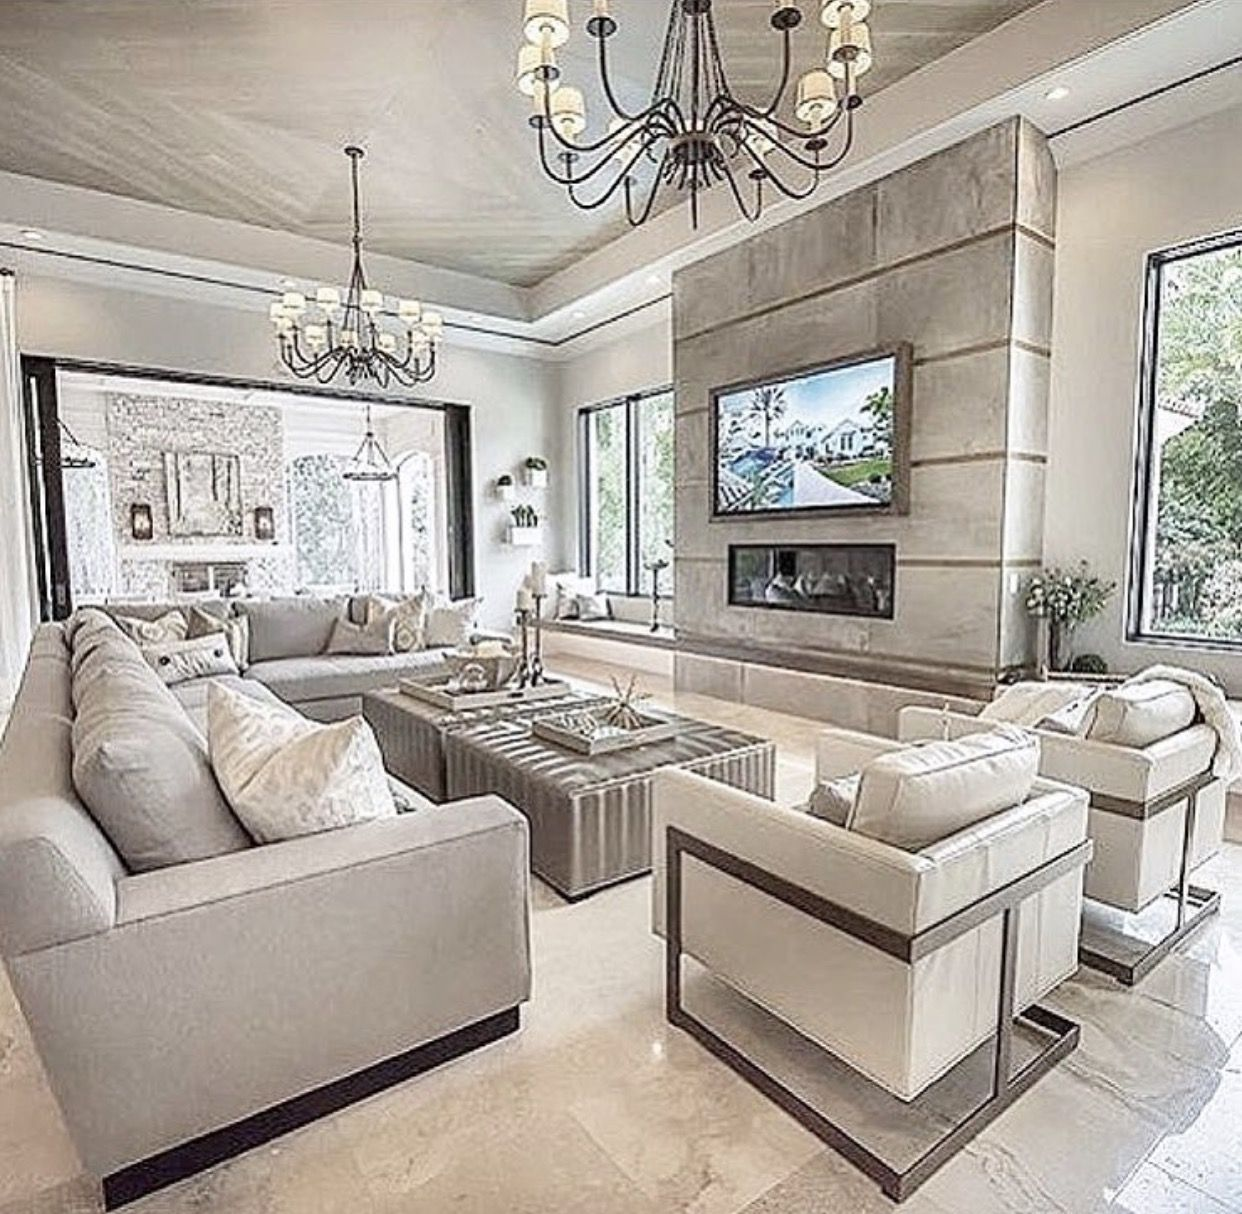 Beautiful  Luxury living room design, Elegant living room decor